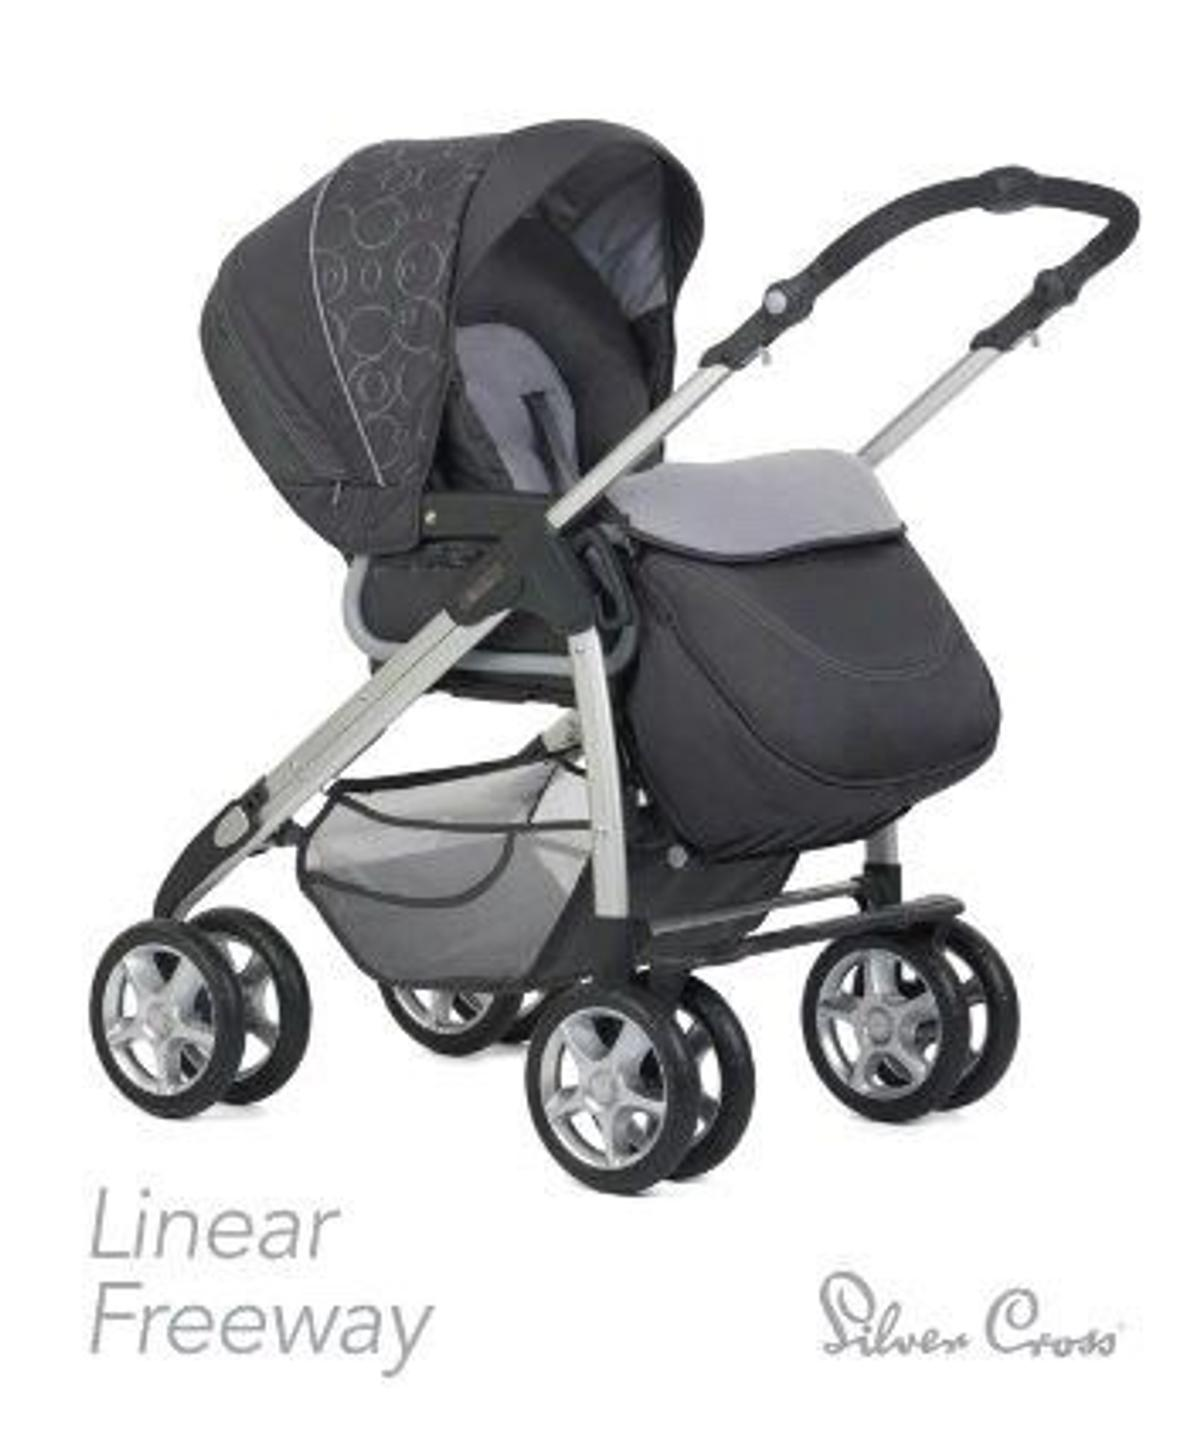 Pram Pushchair Silver Cross Linear Freeway In M16 Manchester For